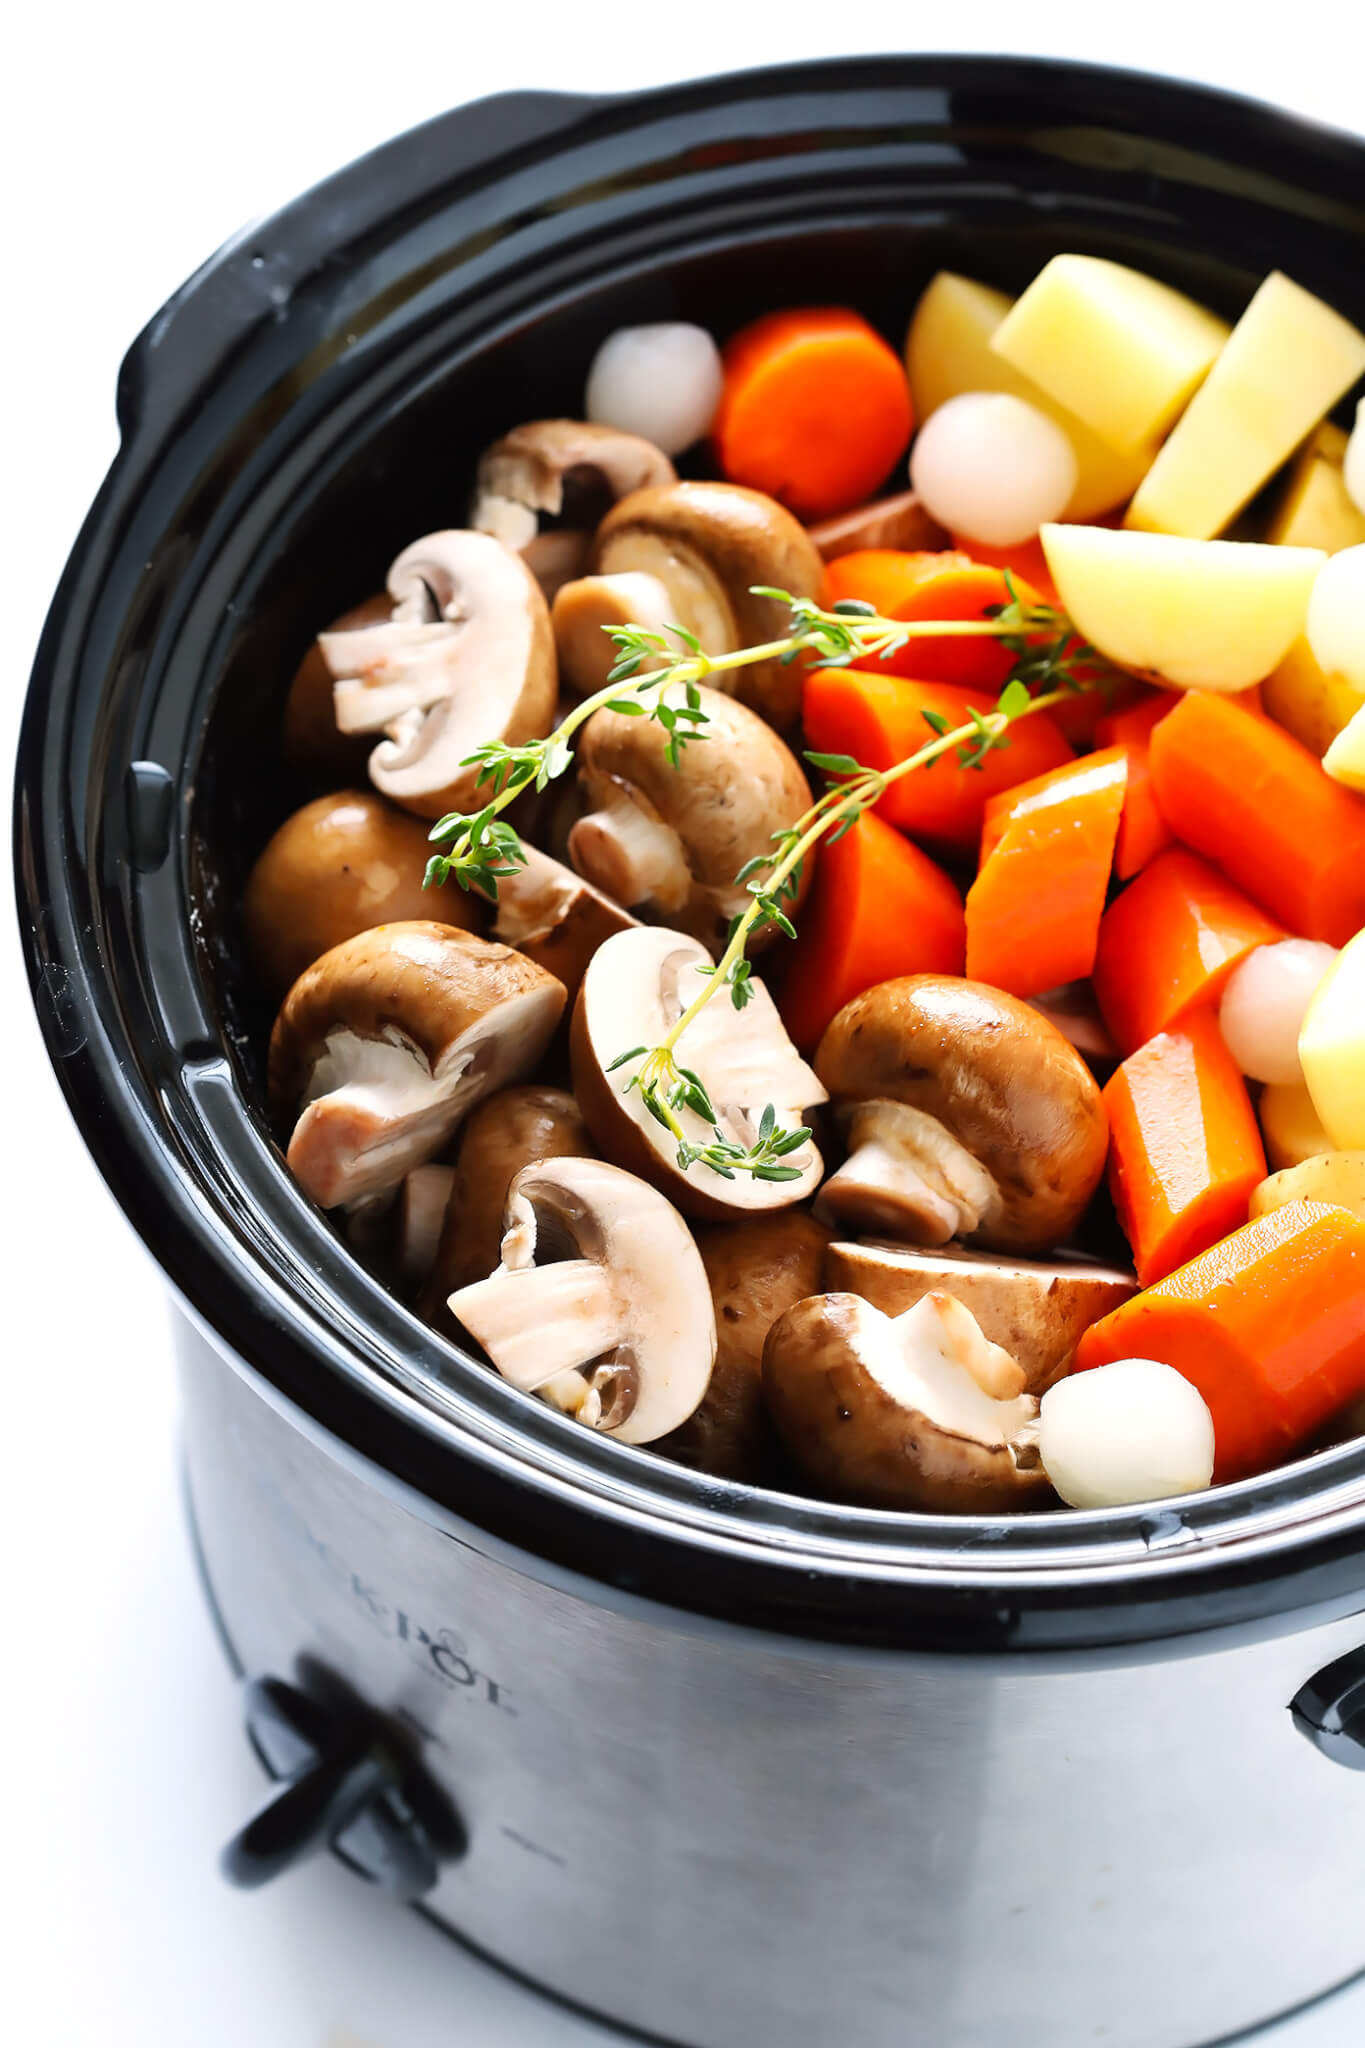 Vegetarian Portobello Pot Roast Recipe Ingredients